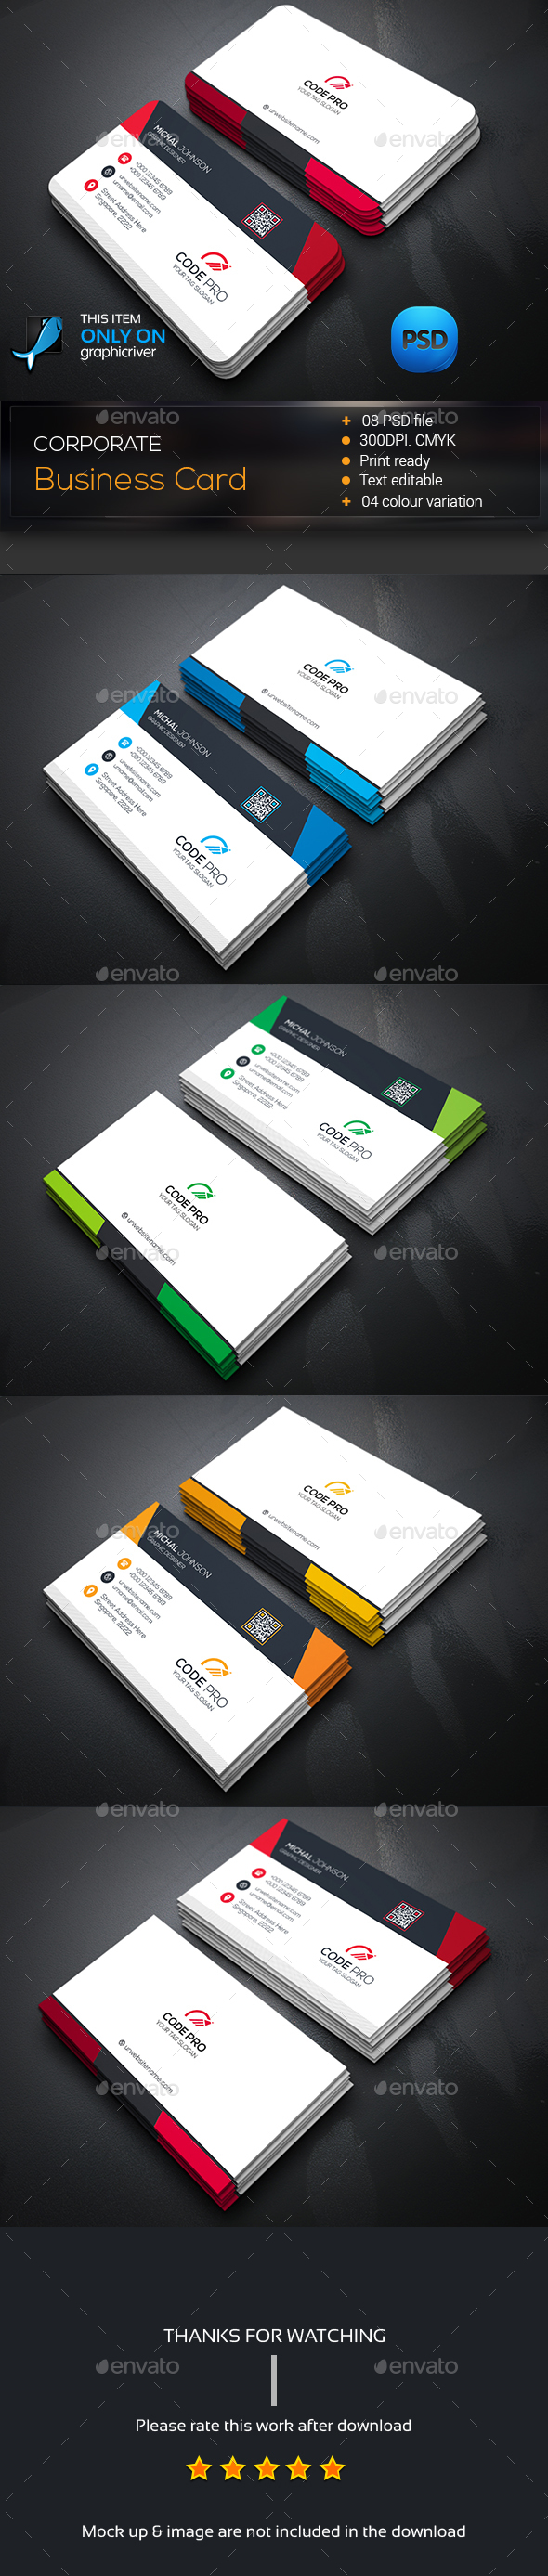 Creative business card template psd design download http creative business card template psd design download httpgraphicriver reheart Images